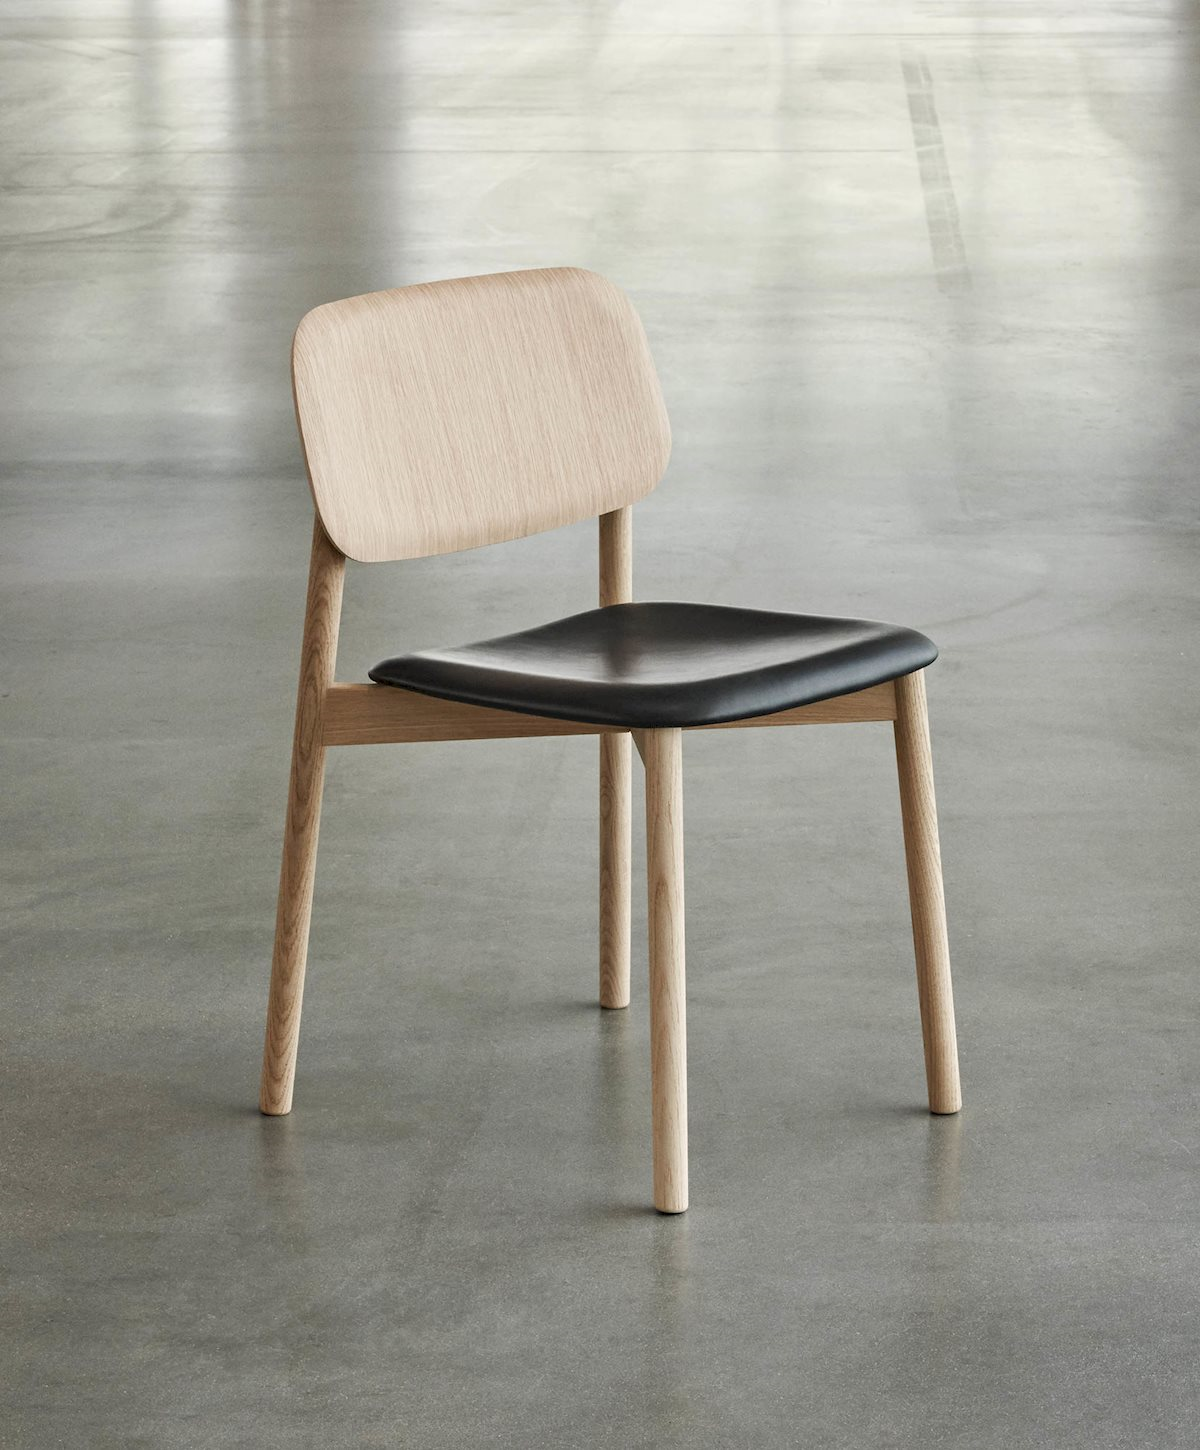 About A Chair 12 Side Chair.Soft Edge 12 Side Chair Upholstery By Hay Satelliet Uk